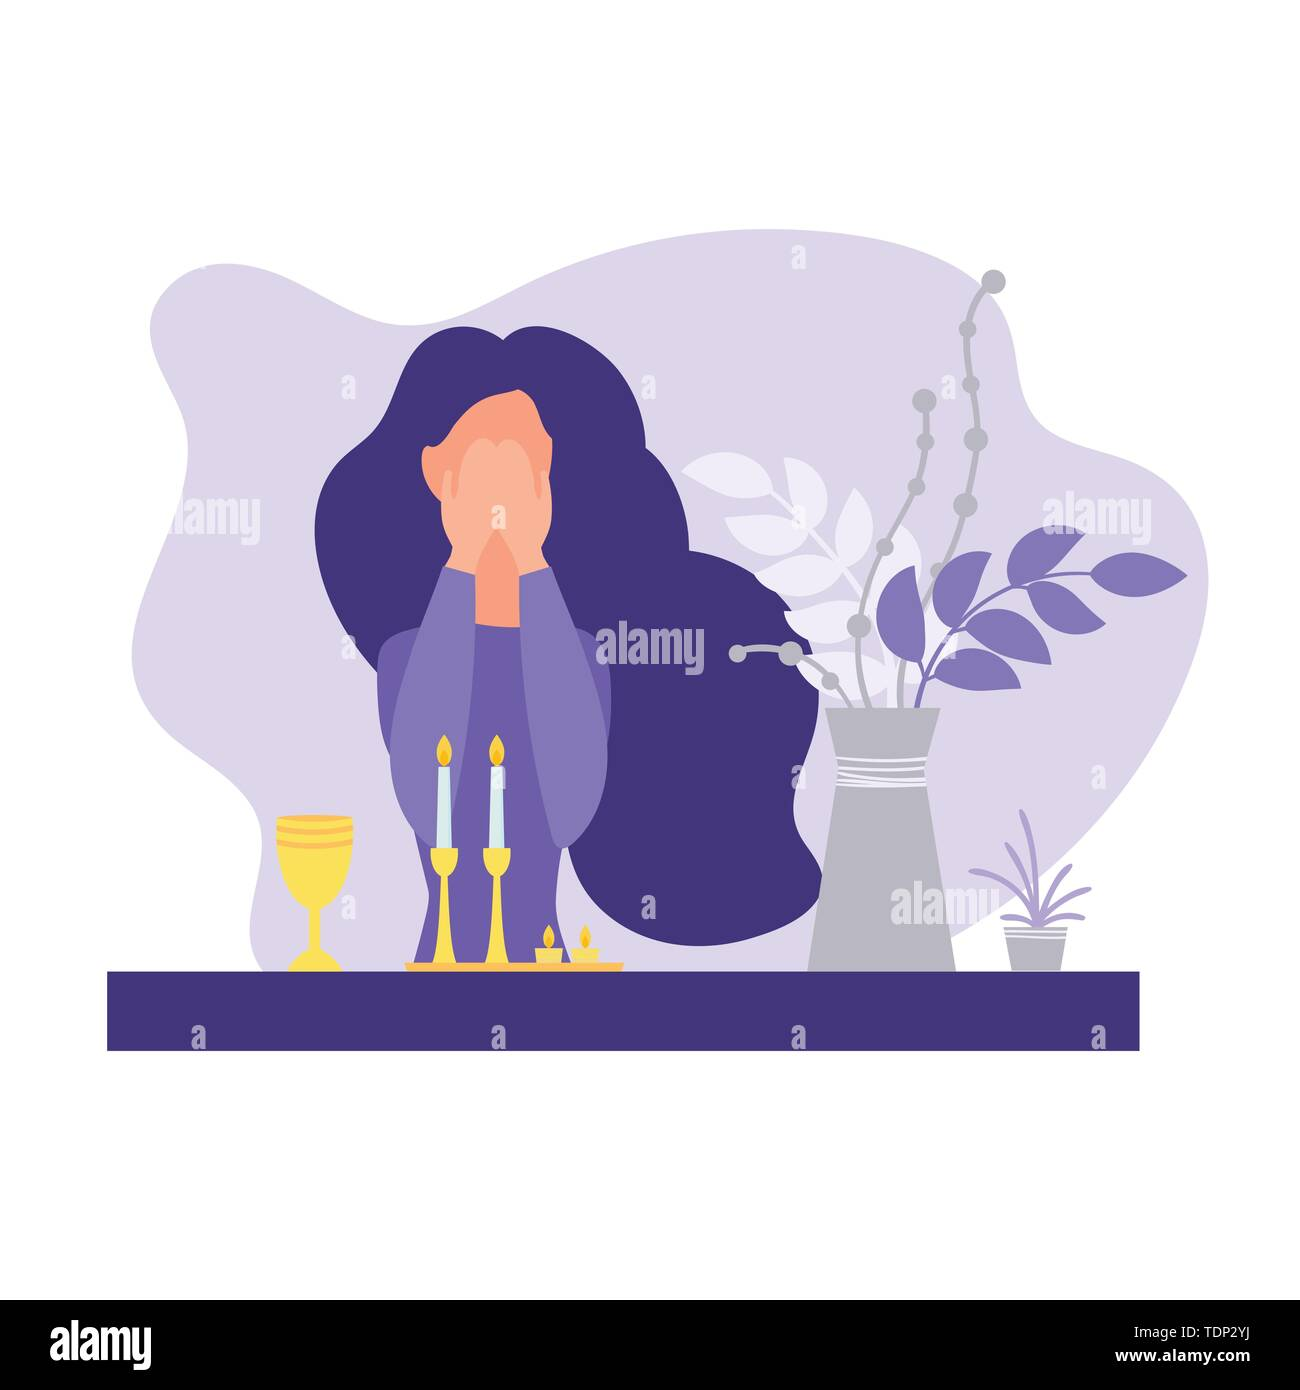 Jewish woman lighting candles for Shabbat and says the blessing. Modern flat style. Isolated on white background. Vector illustration. - Stock Image